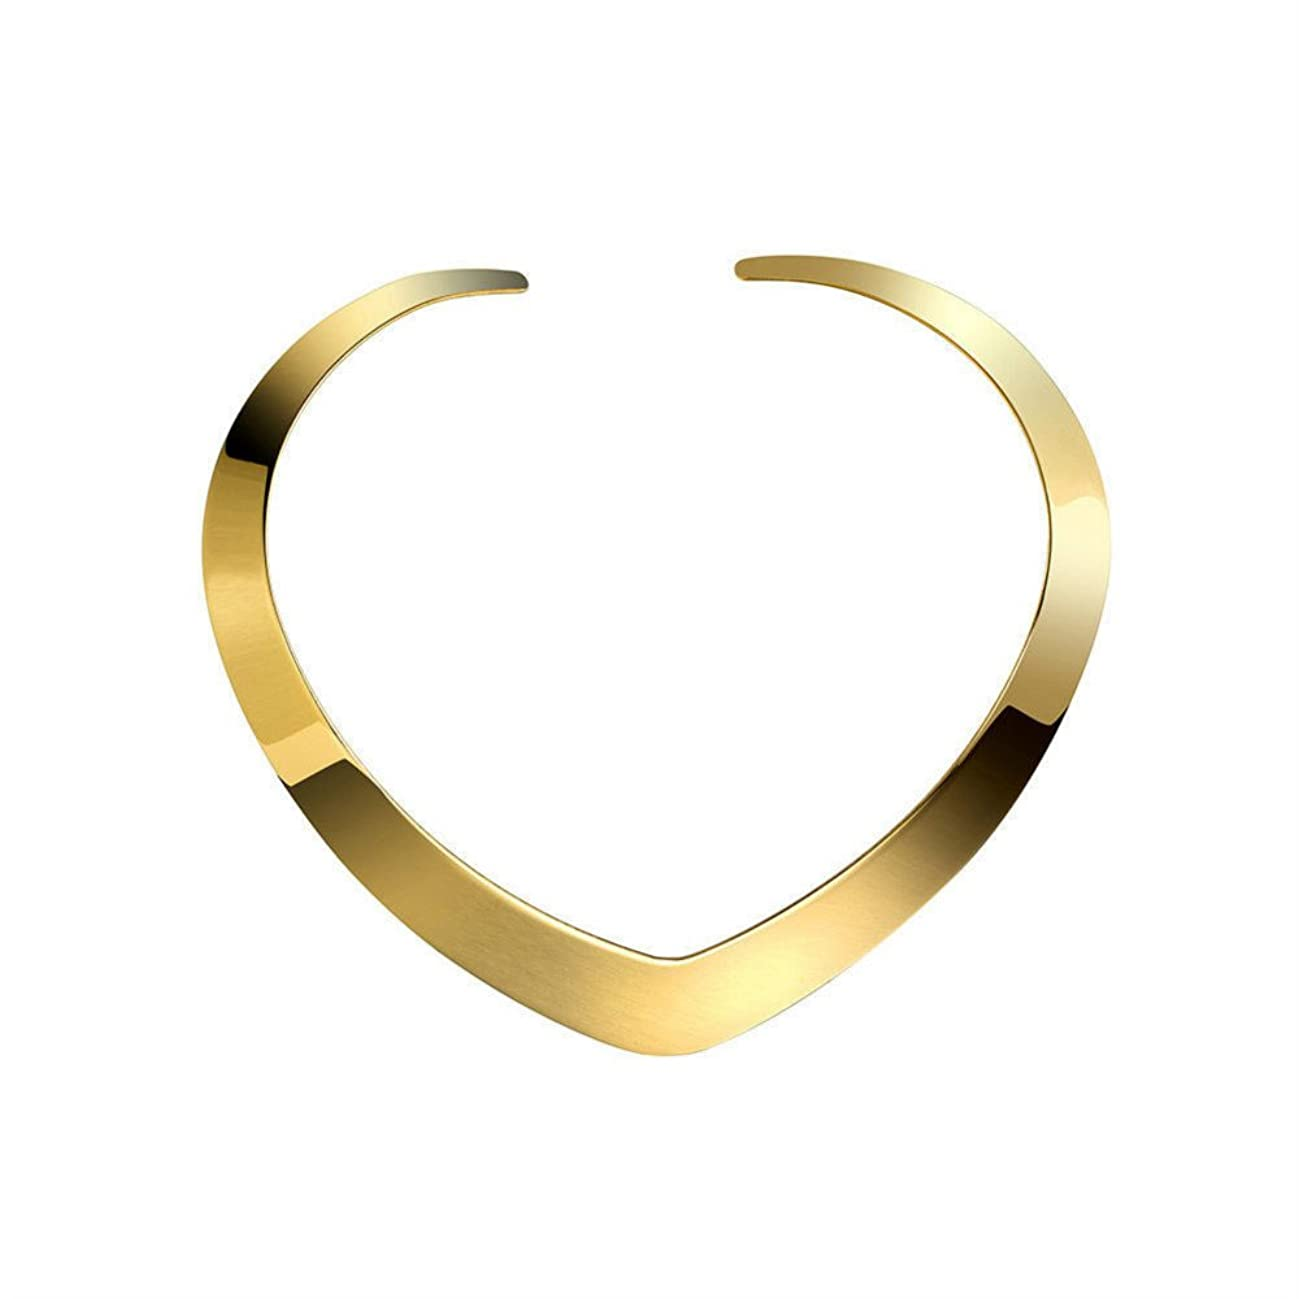 High Polished Stainless Steel Necklace Love Choker Heart Shape Women Statement Jewelry